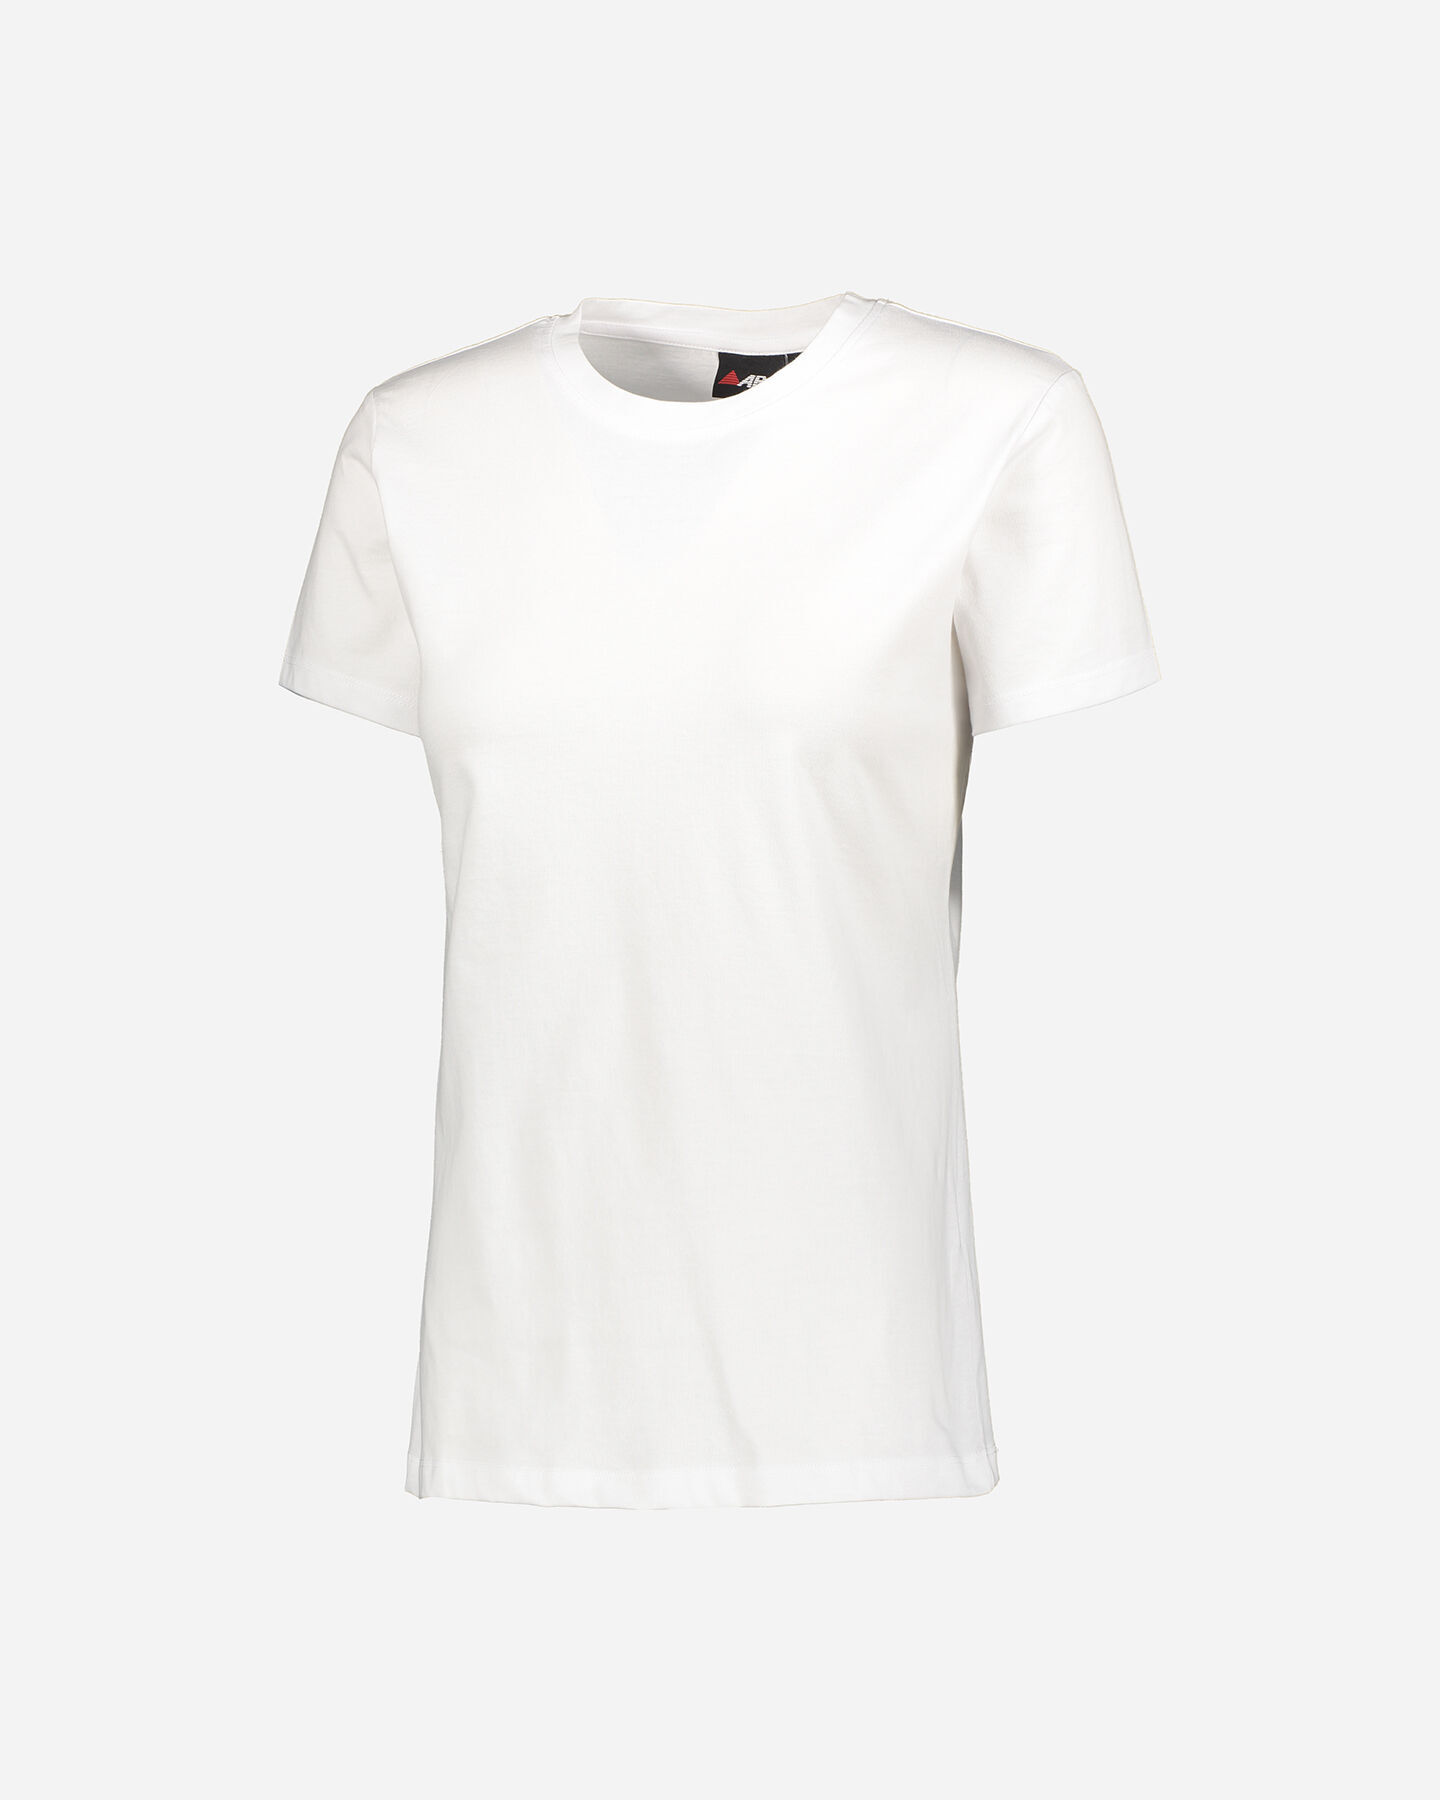 T-Shirt ABC JERSEY  W S5296335 scatto 5